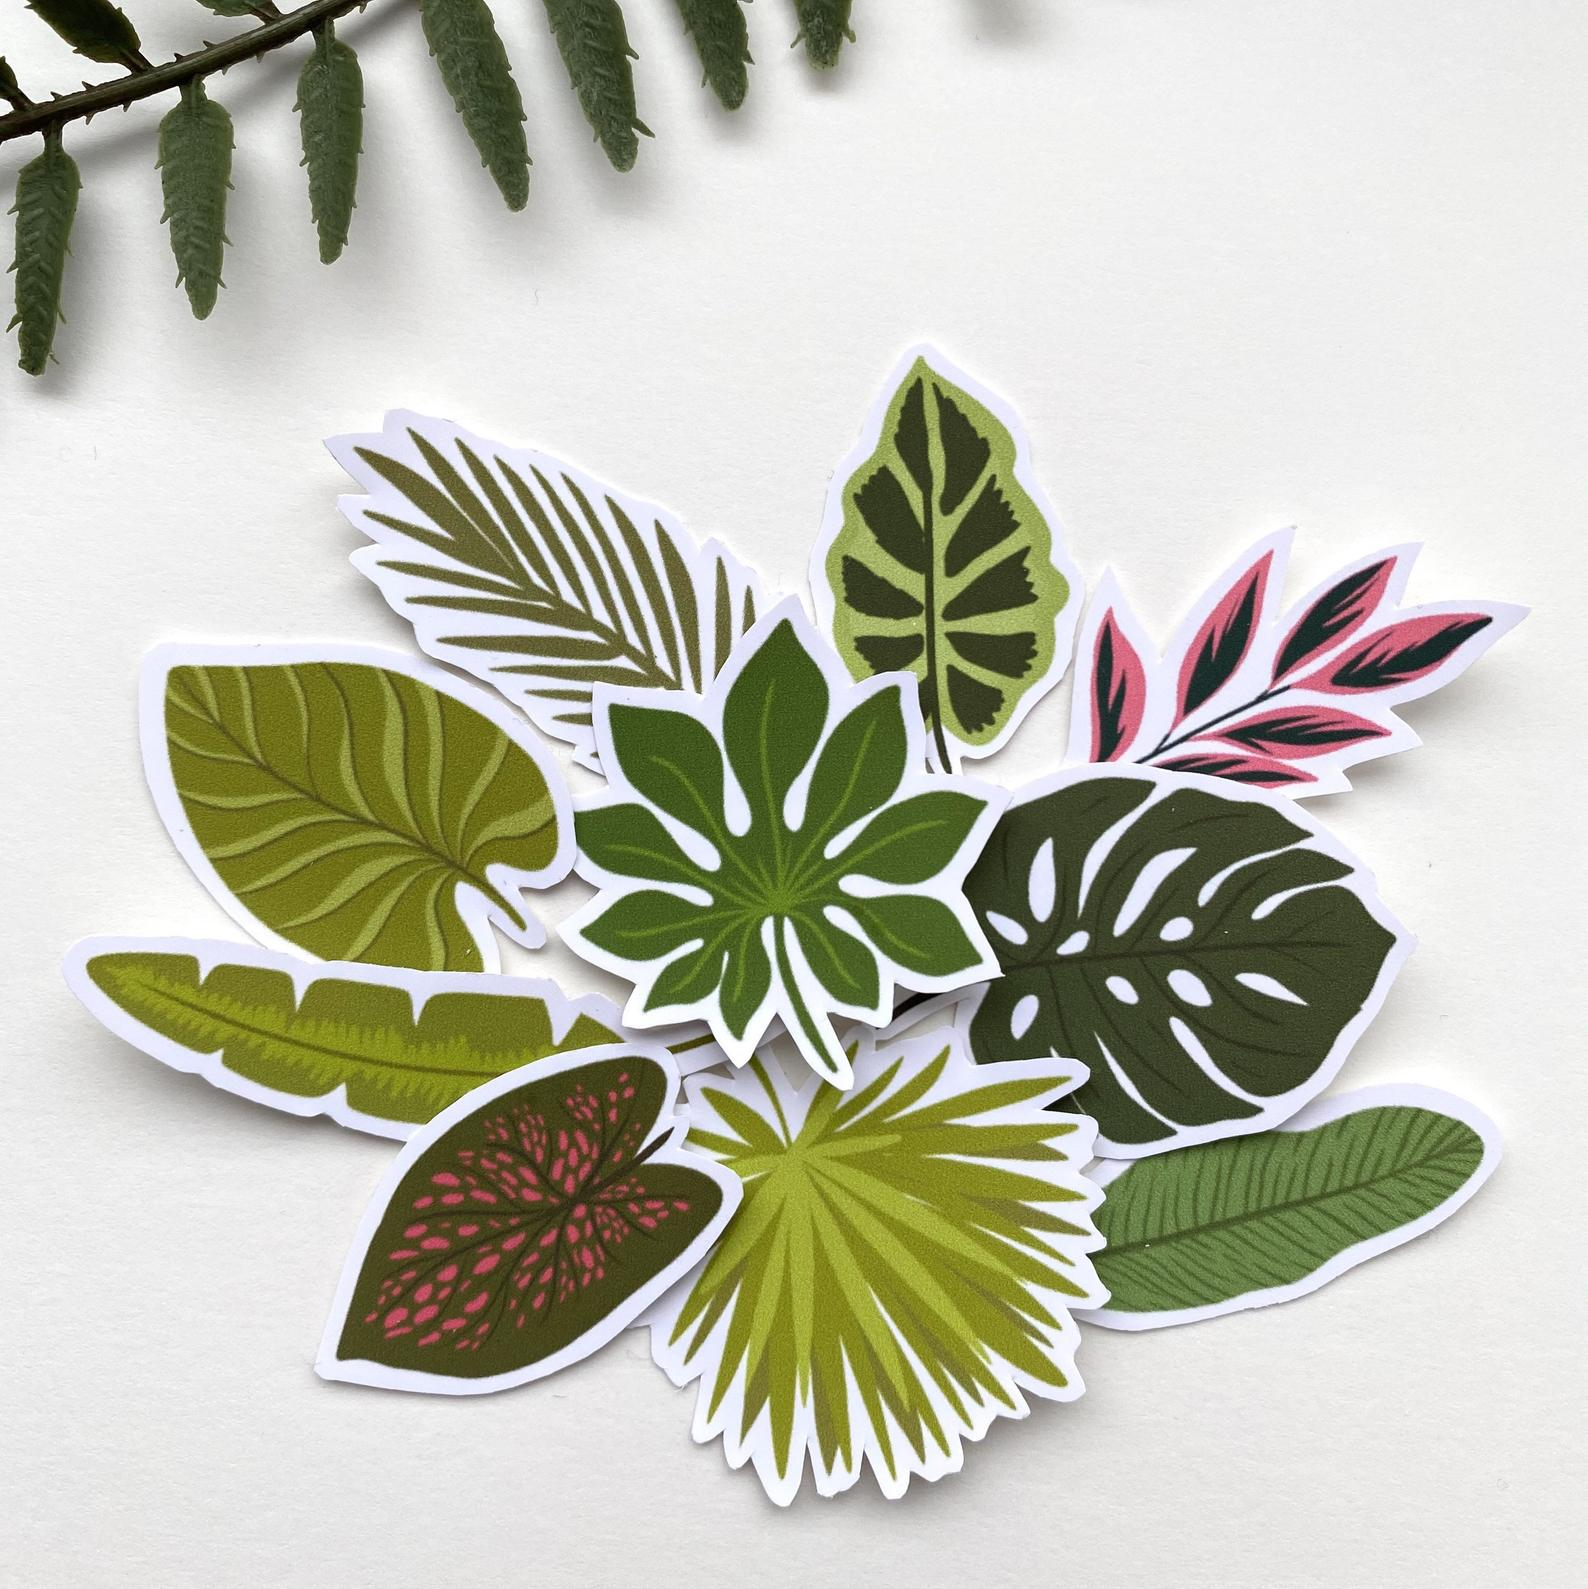 Tropical Leaves Sticker Set Theprintplatypus Com Choose from 600+ tropical leaves graphic resources and download in the form of png, eps, ai or psd. tropical leaves sticker set